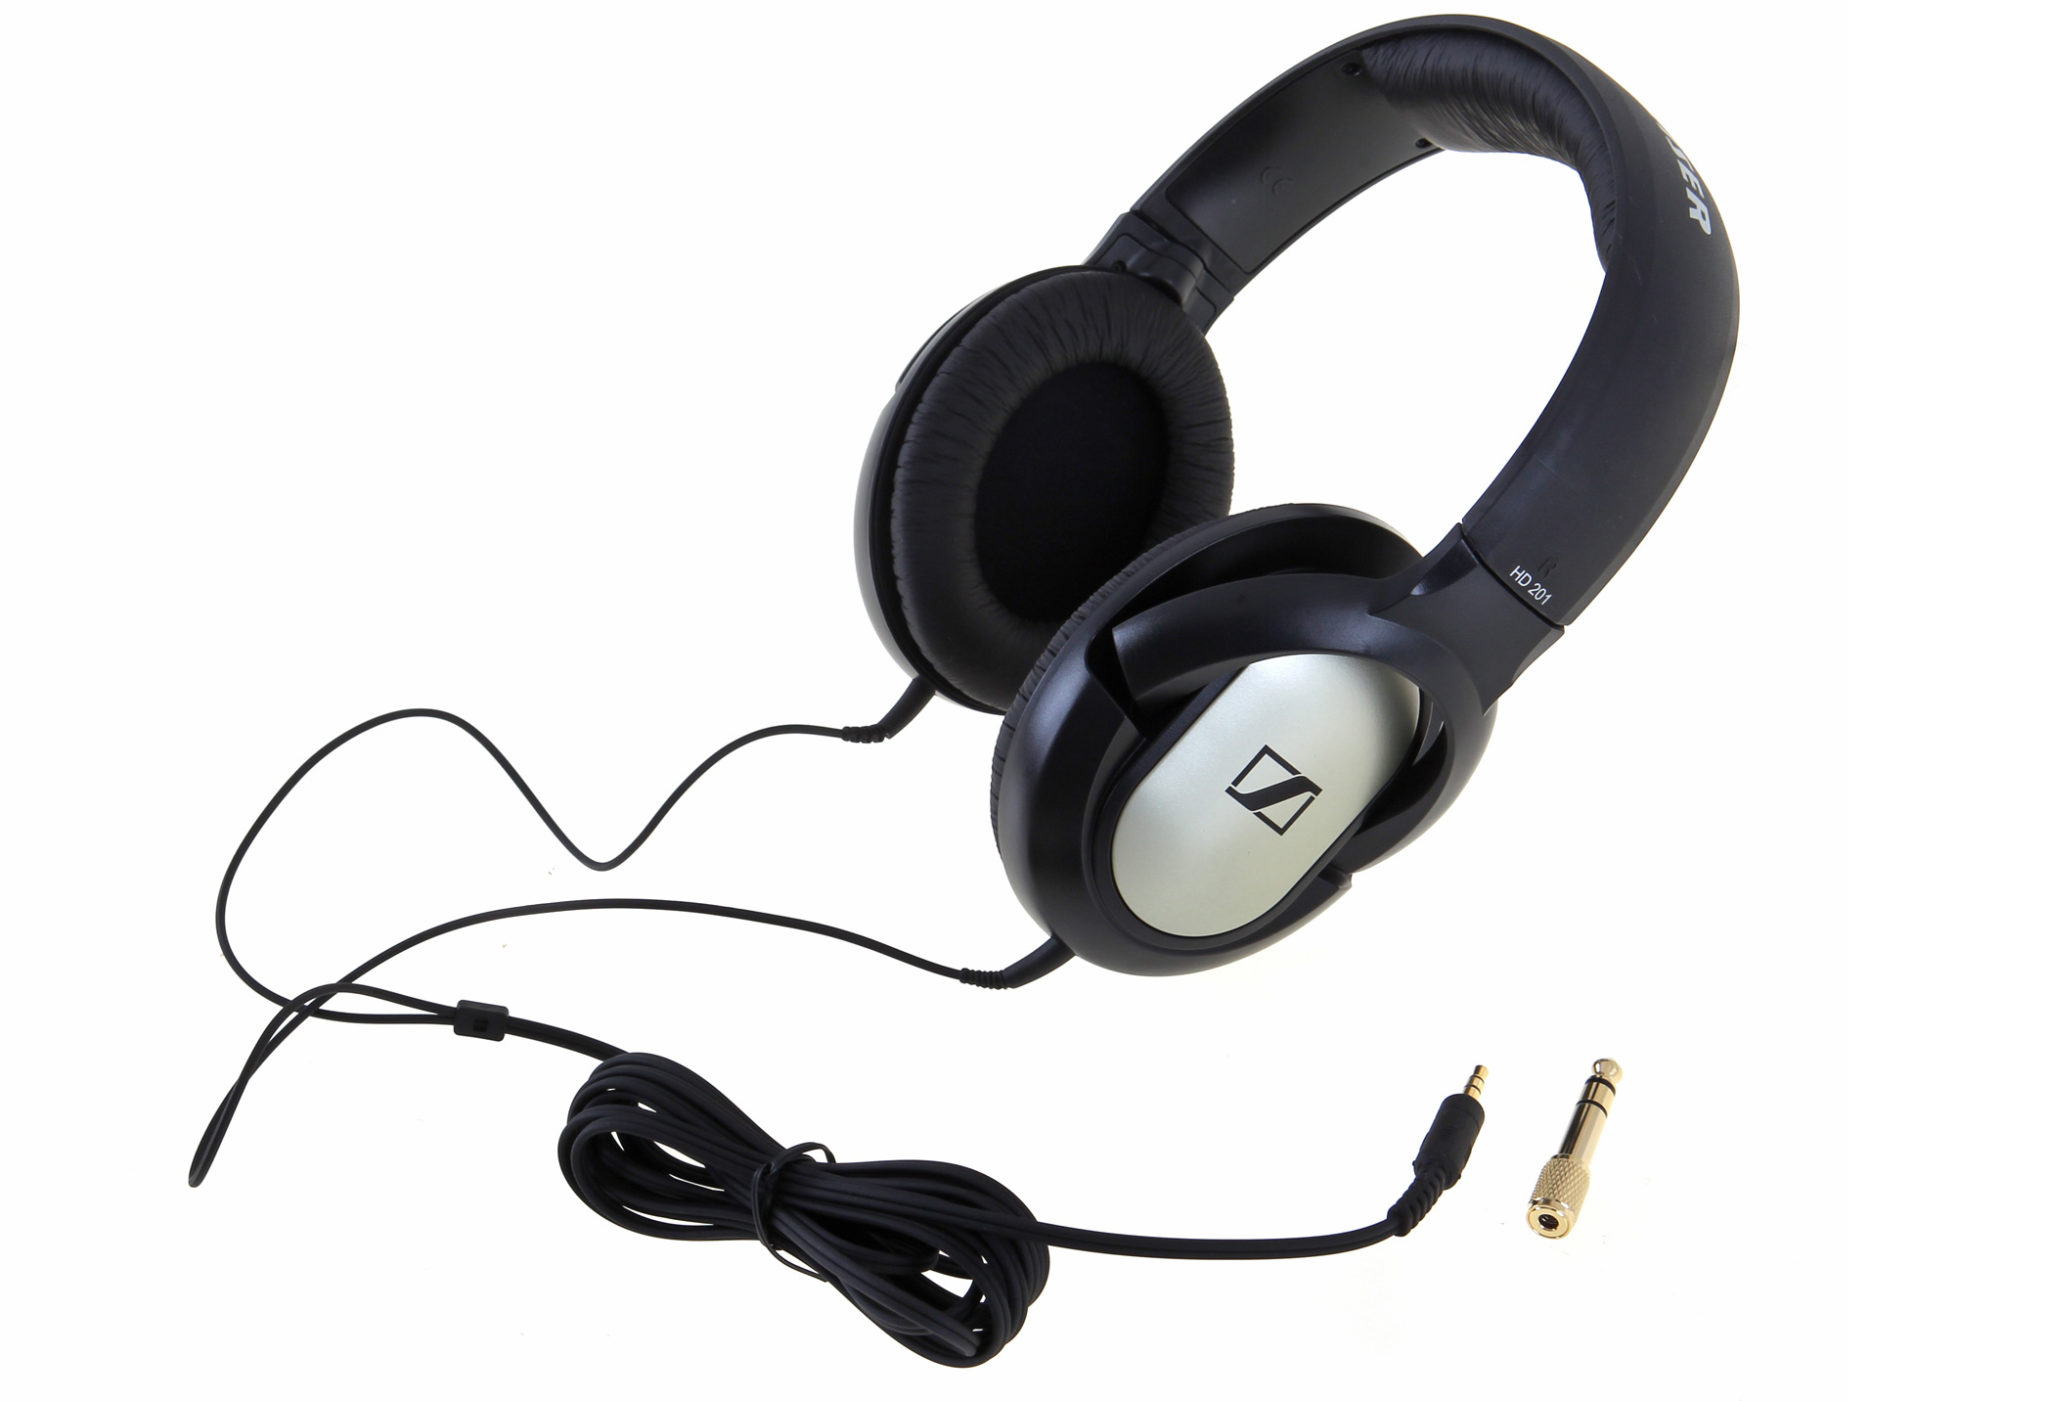 Sennheiser HD 201 Ear Headphones